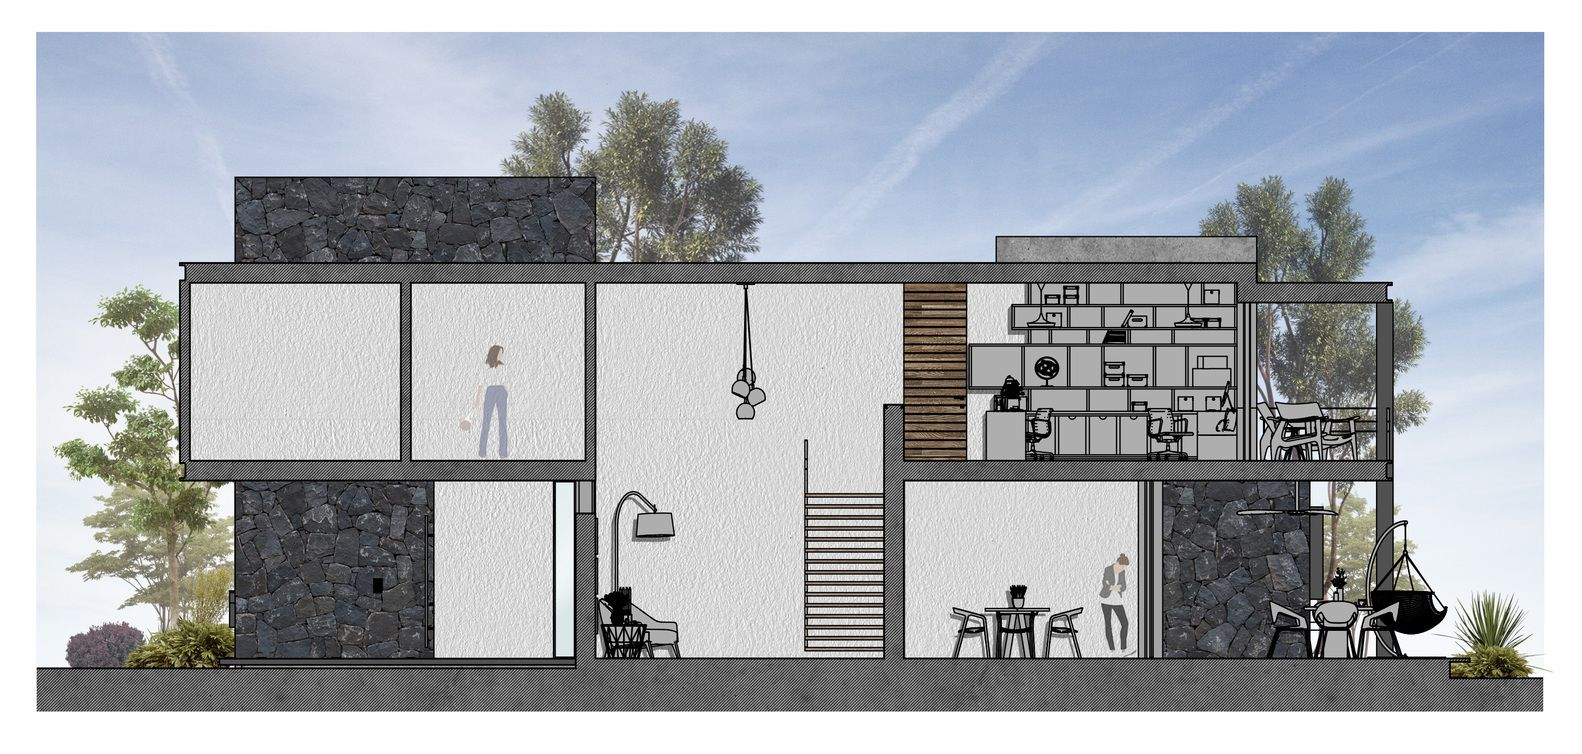 Gallery Of Hilca House Di Frenna Arquitectos 17 In 2020 House Architecture Ground Floor